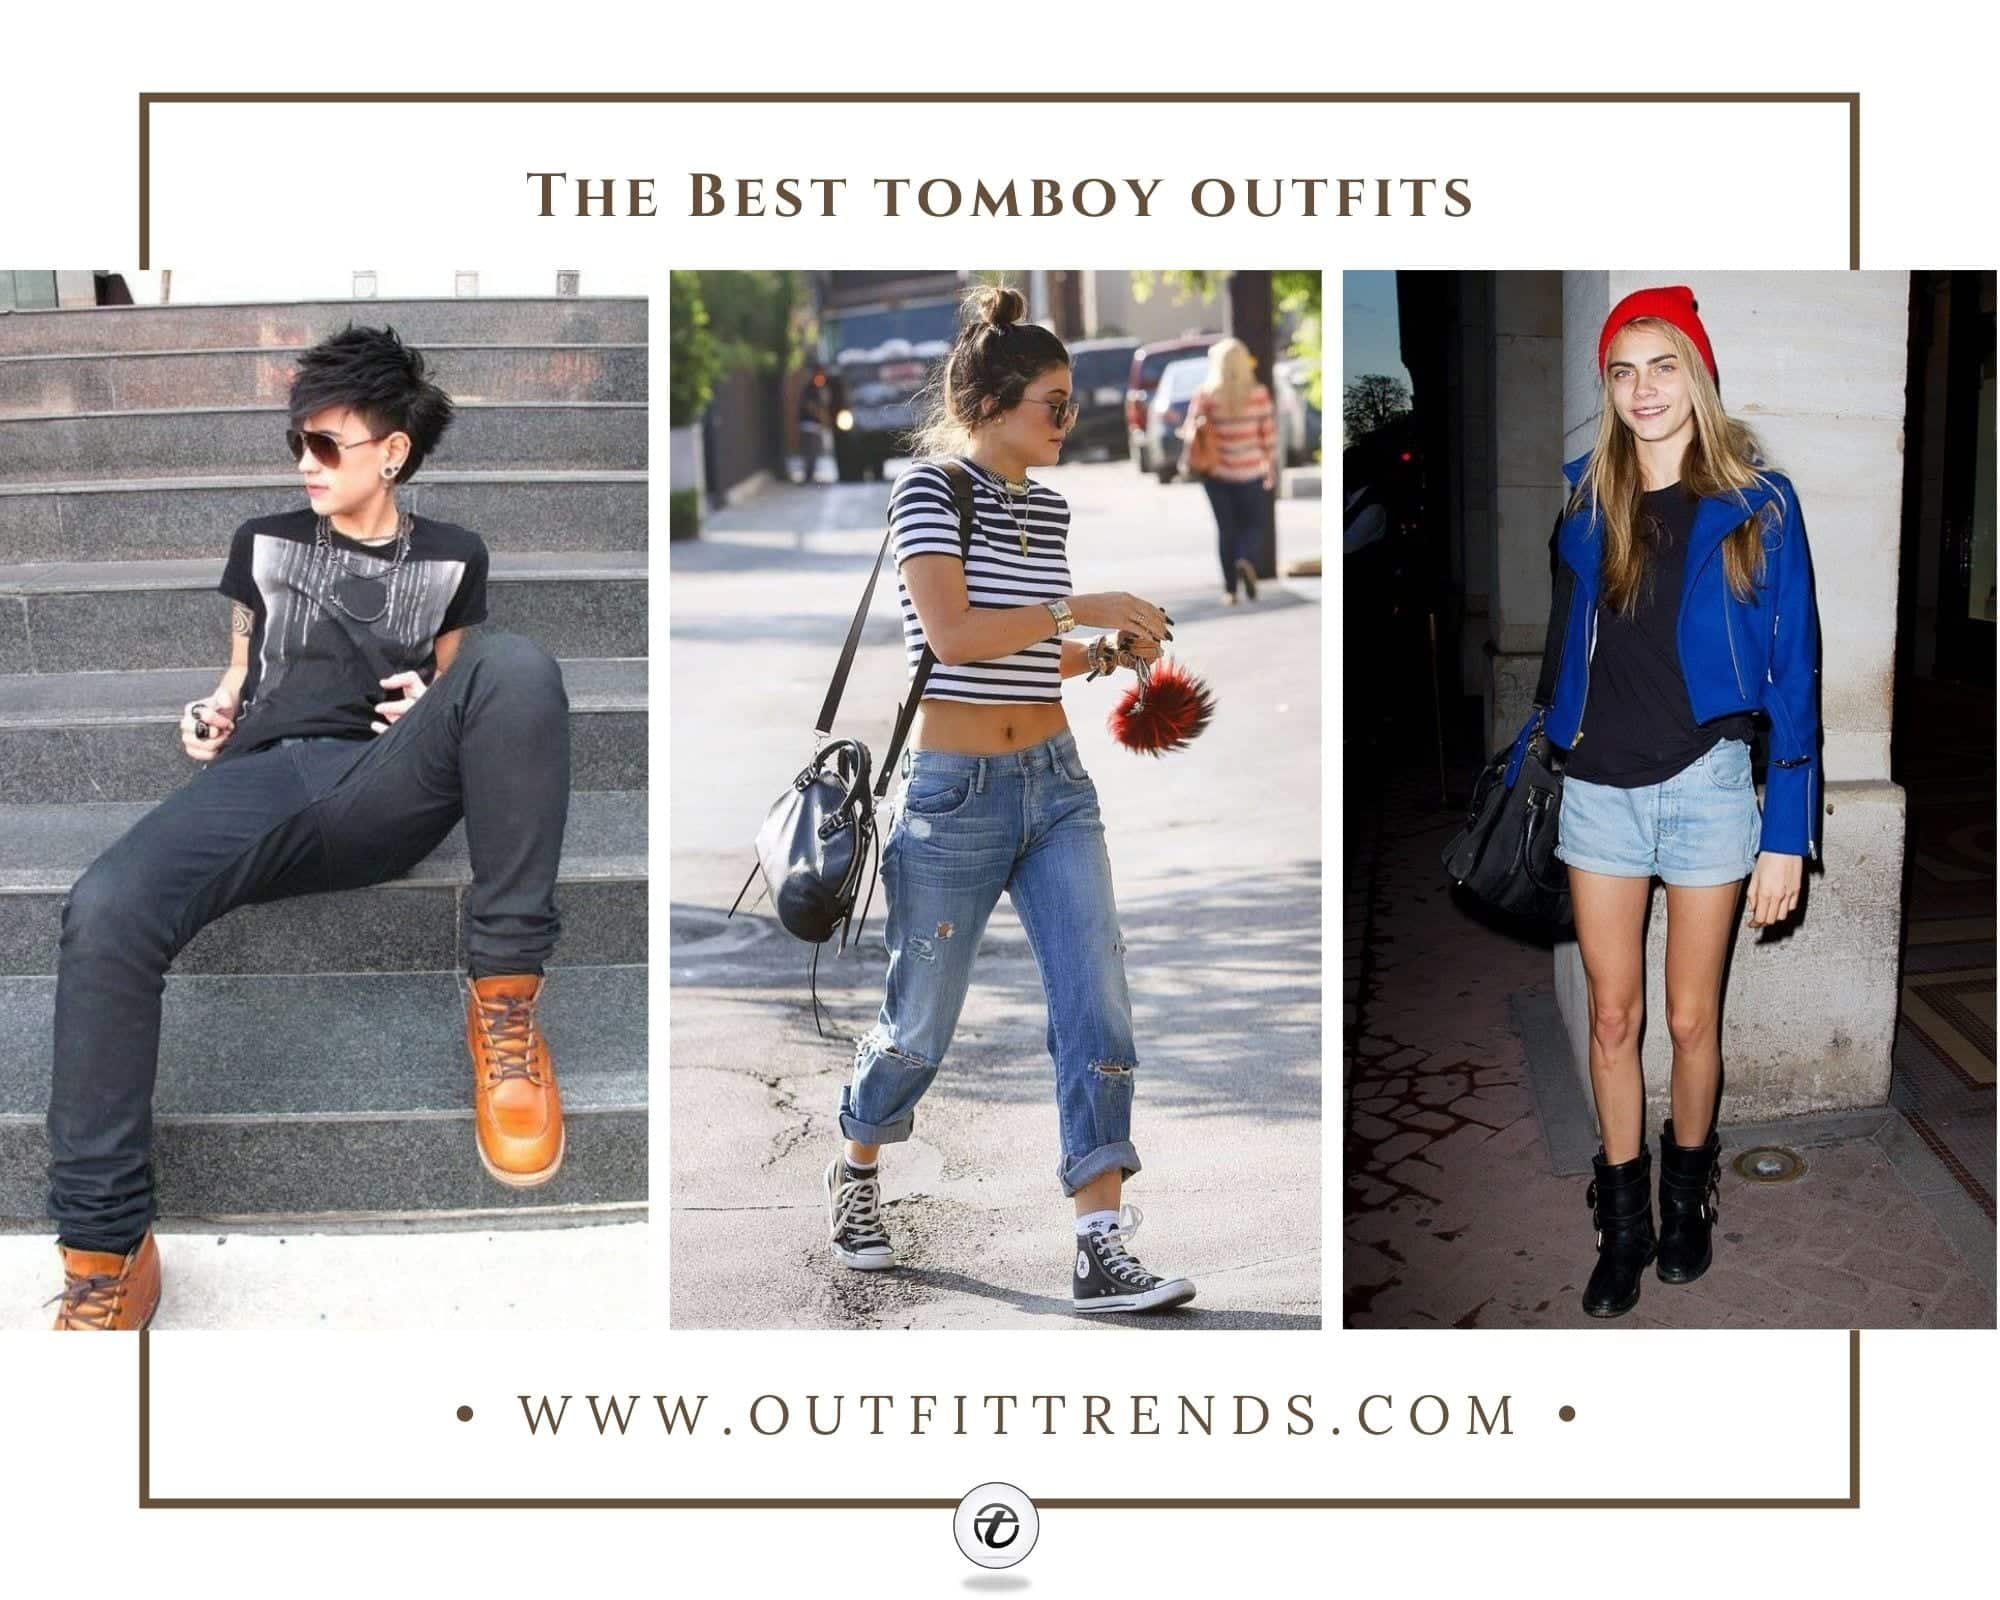 Tomboy Outfits – How to Dress Like Tomboy & 15 Outfit Ideas